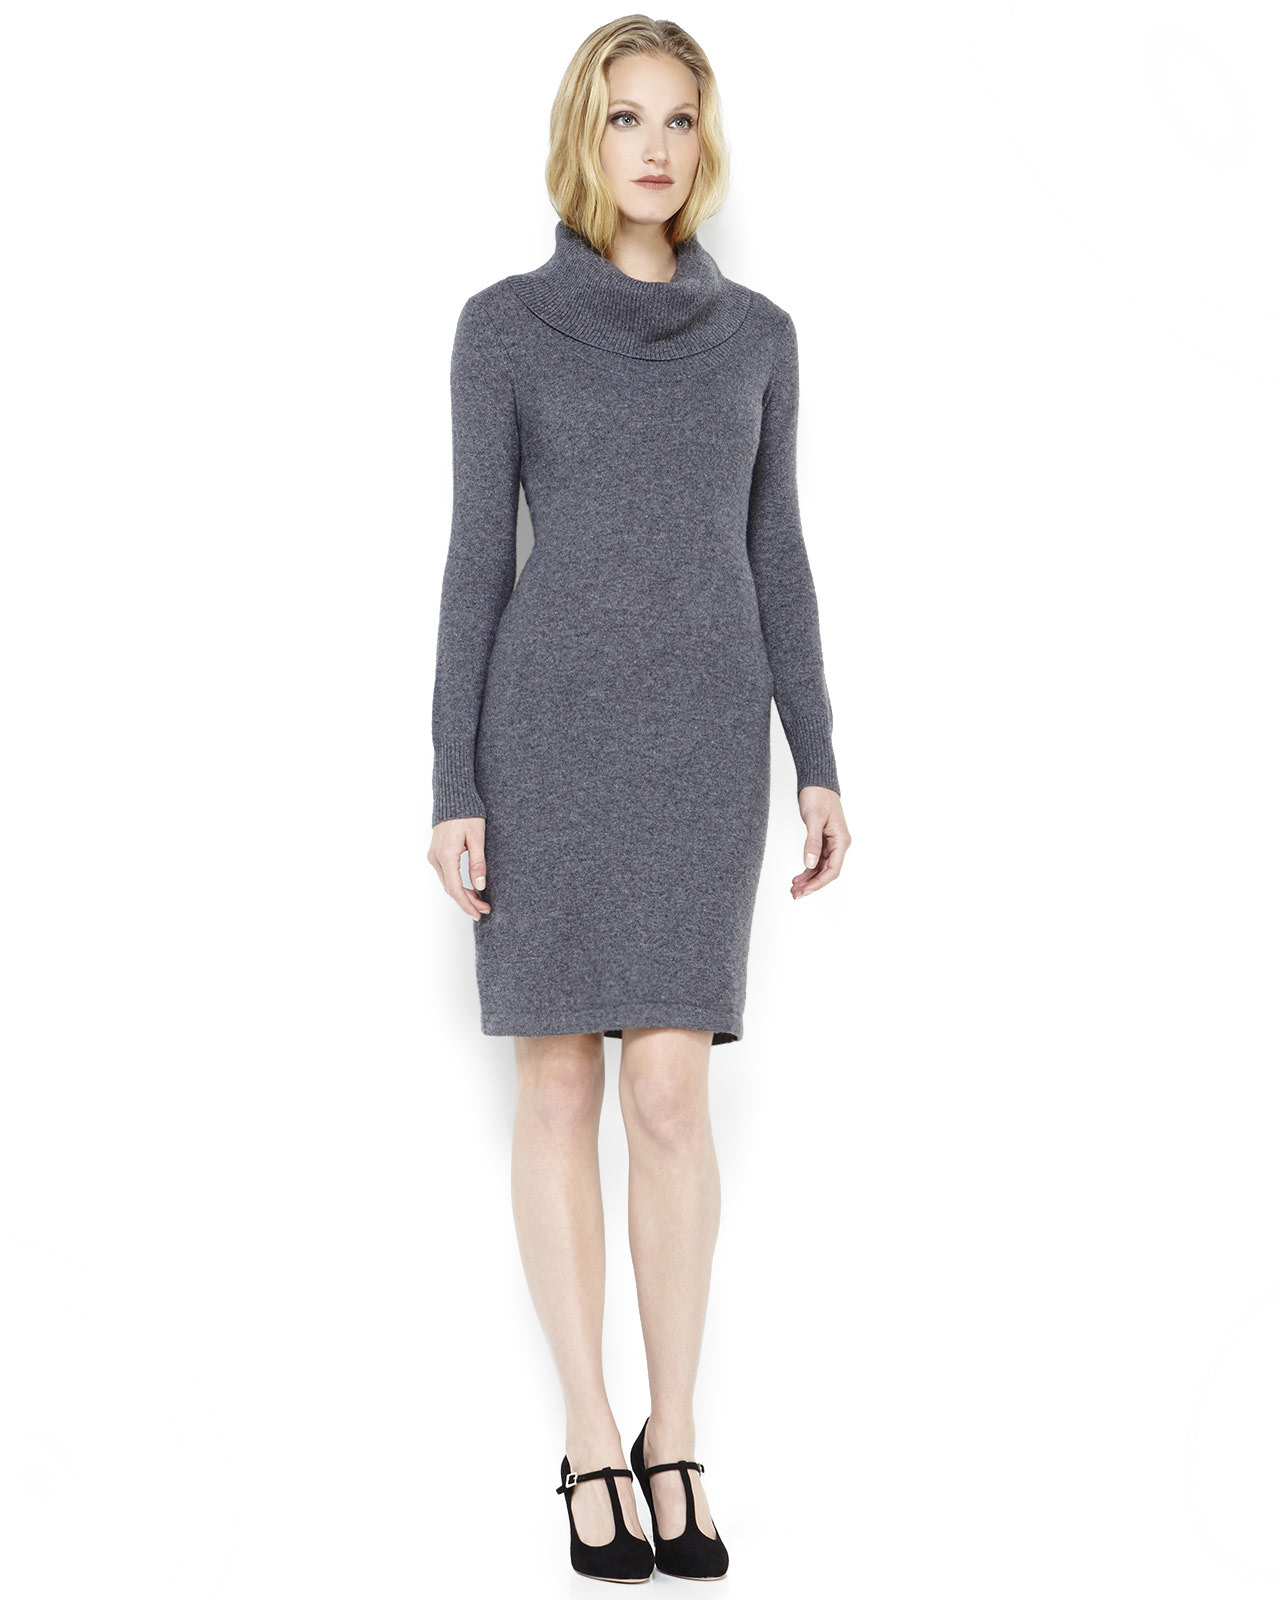 Grey Sweater Dress Clothing